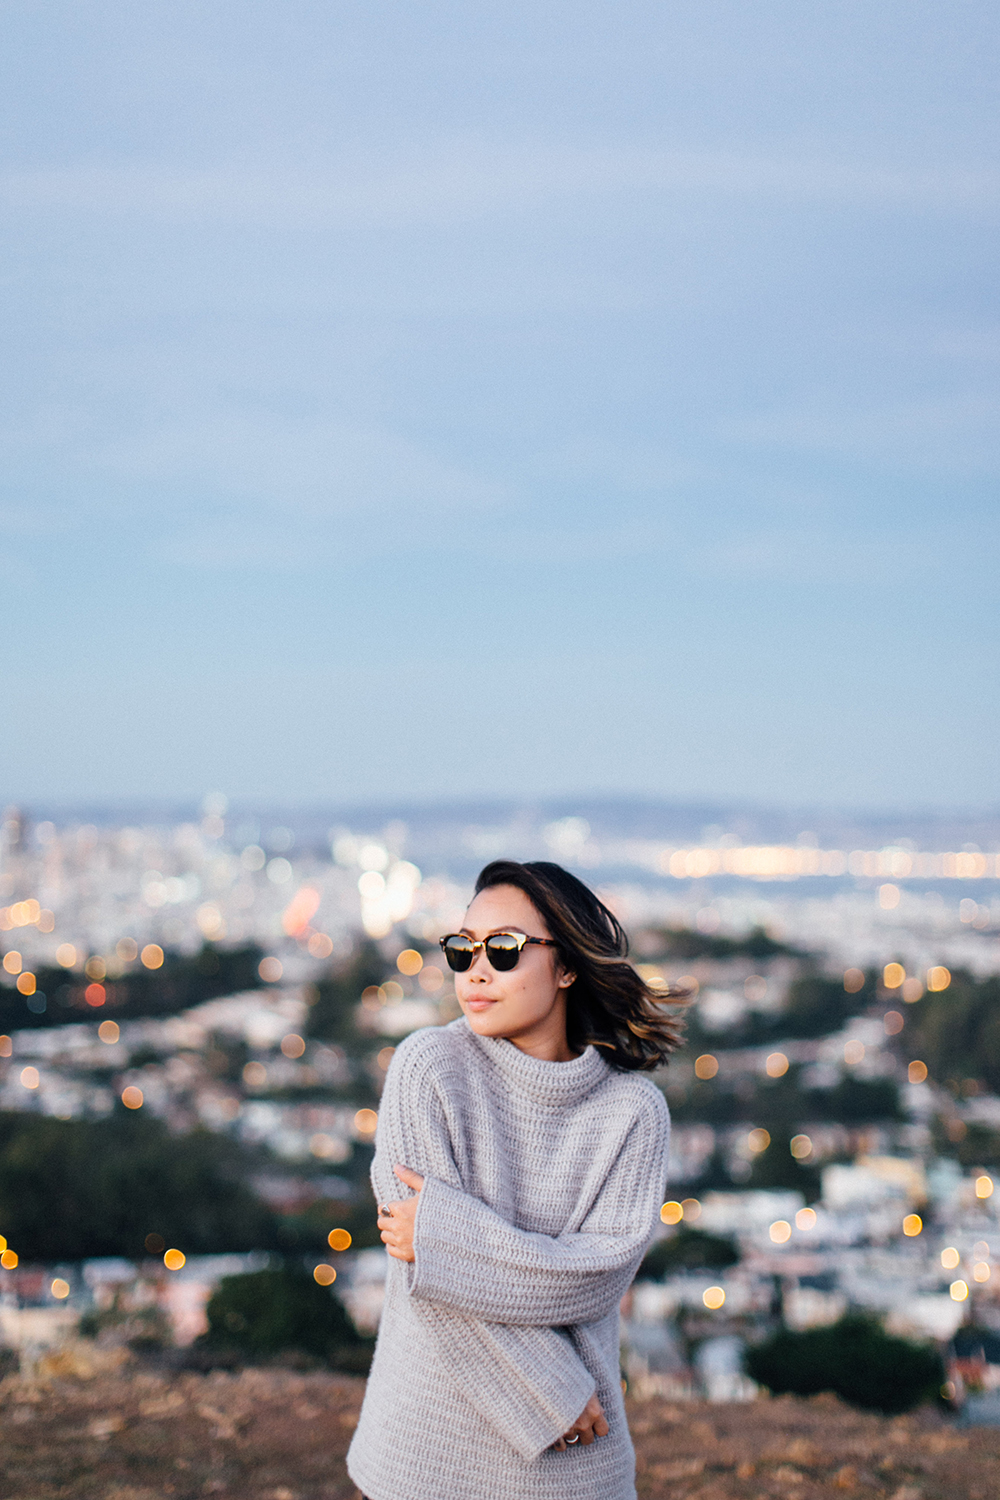 08margaretoleary-fall-knit-sweater-sf-sanfrancisco-landscape-cityscape-travel-style-fashion